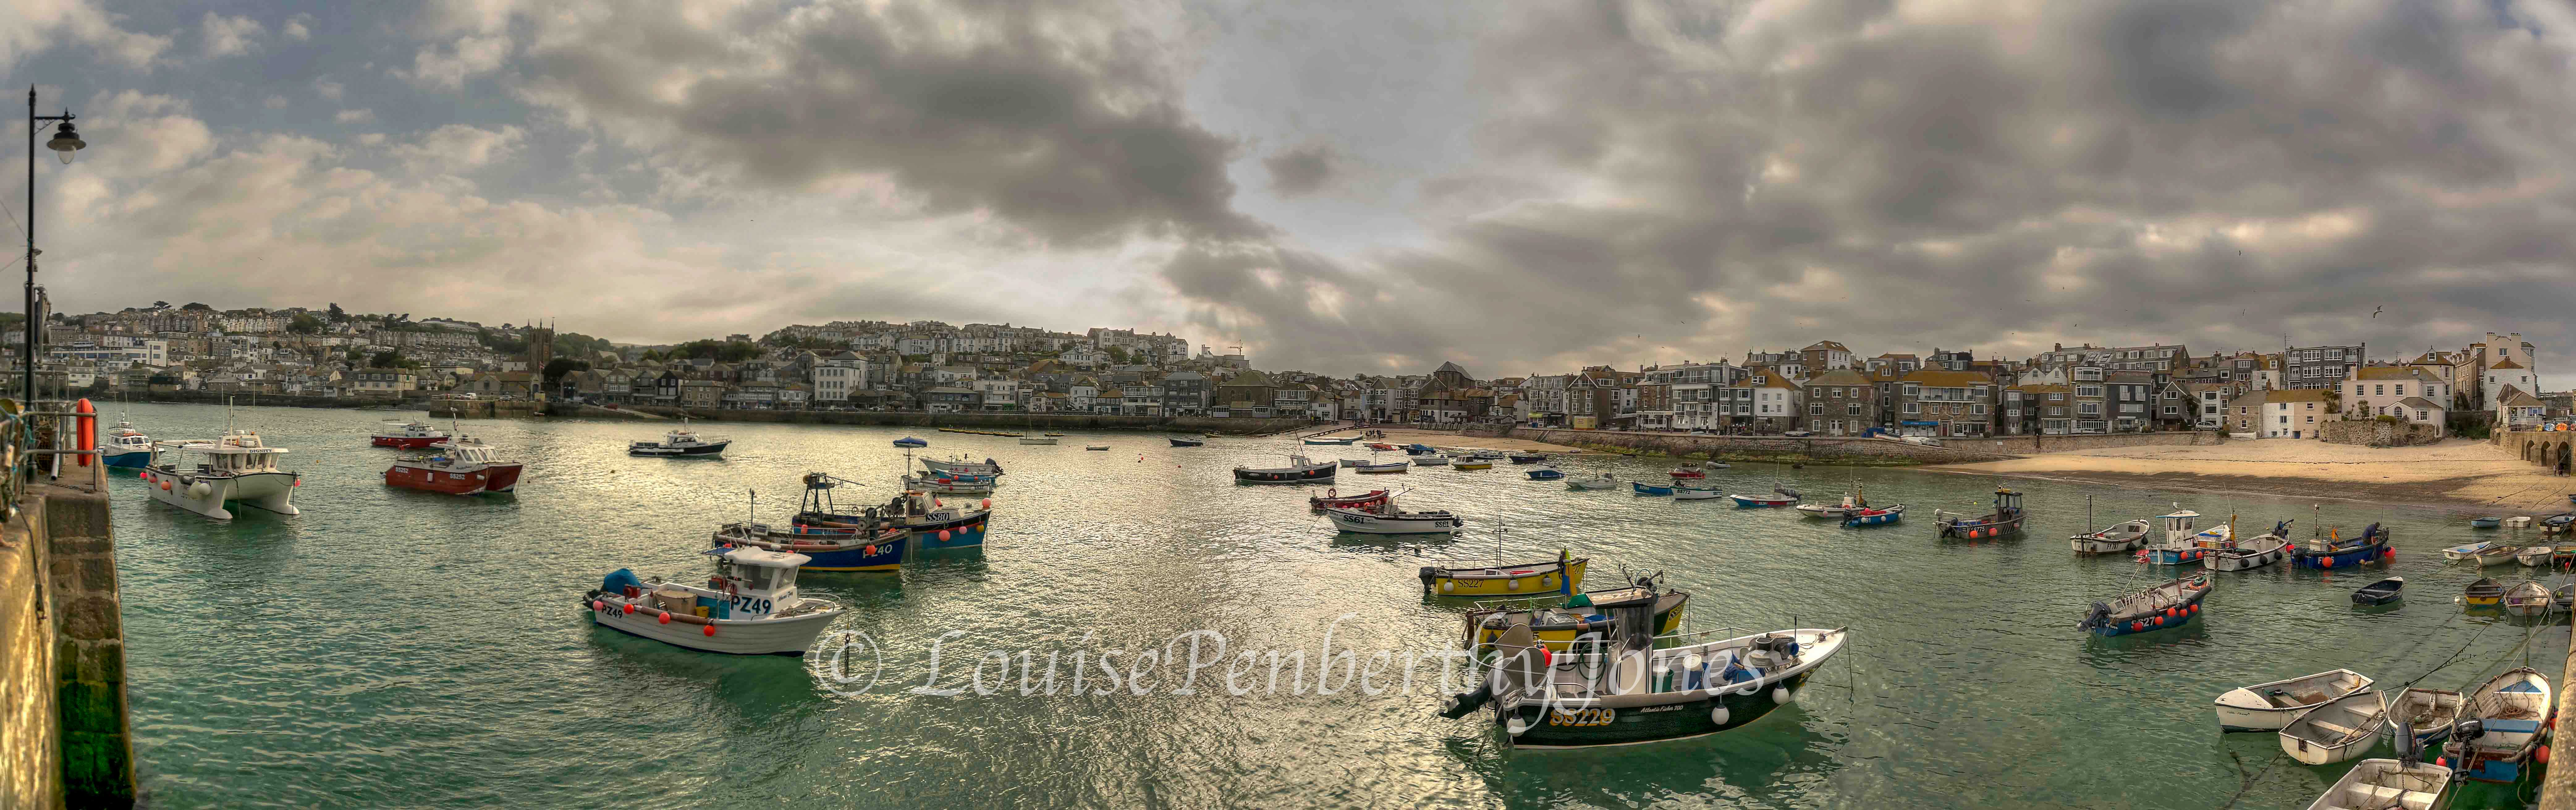 Evening in St Ives Harbour-2.jpg